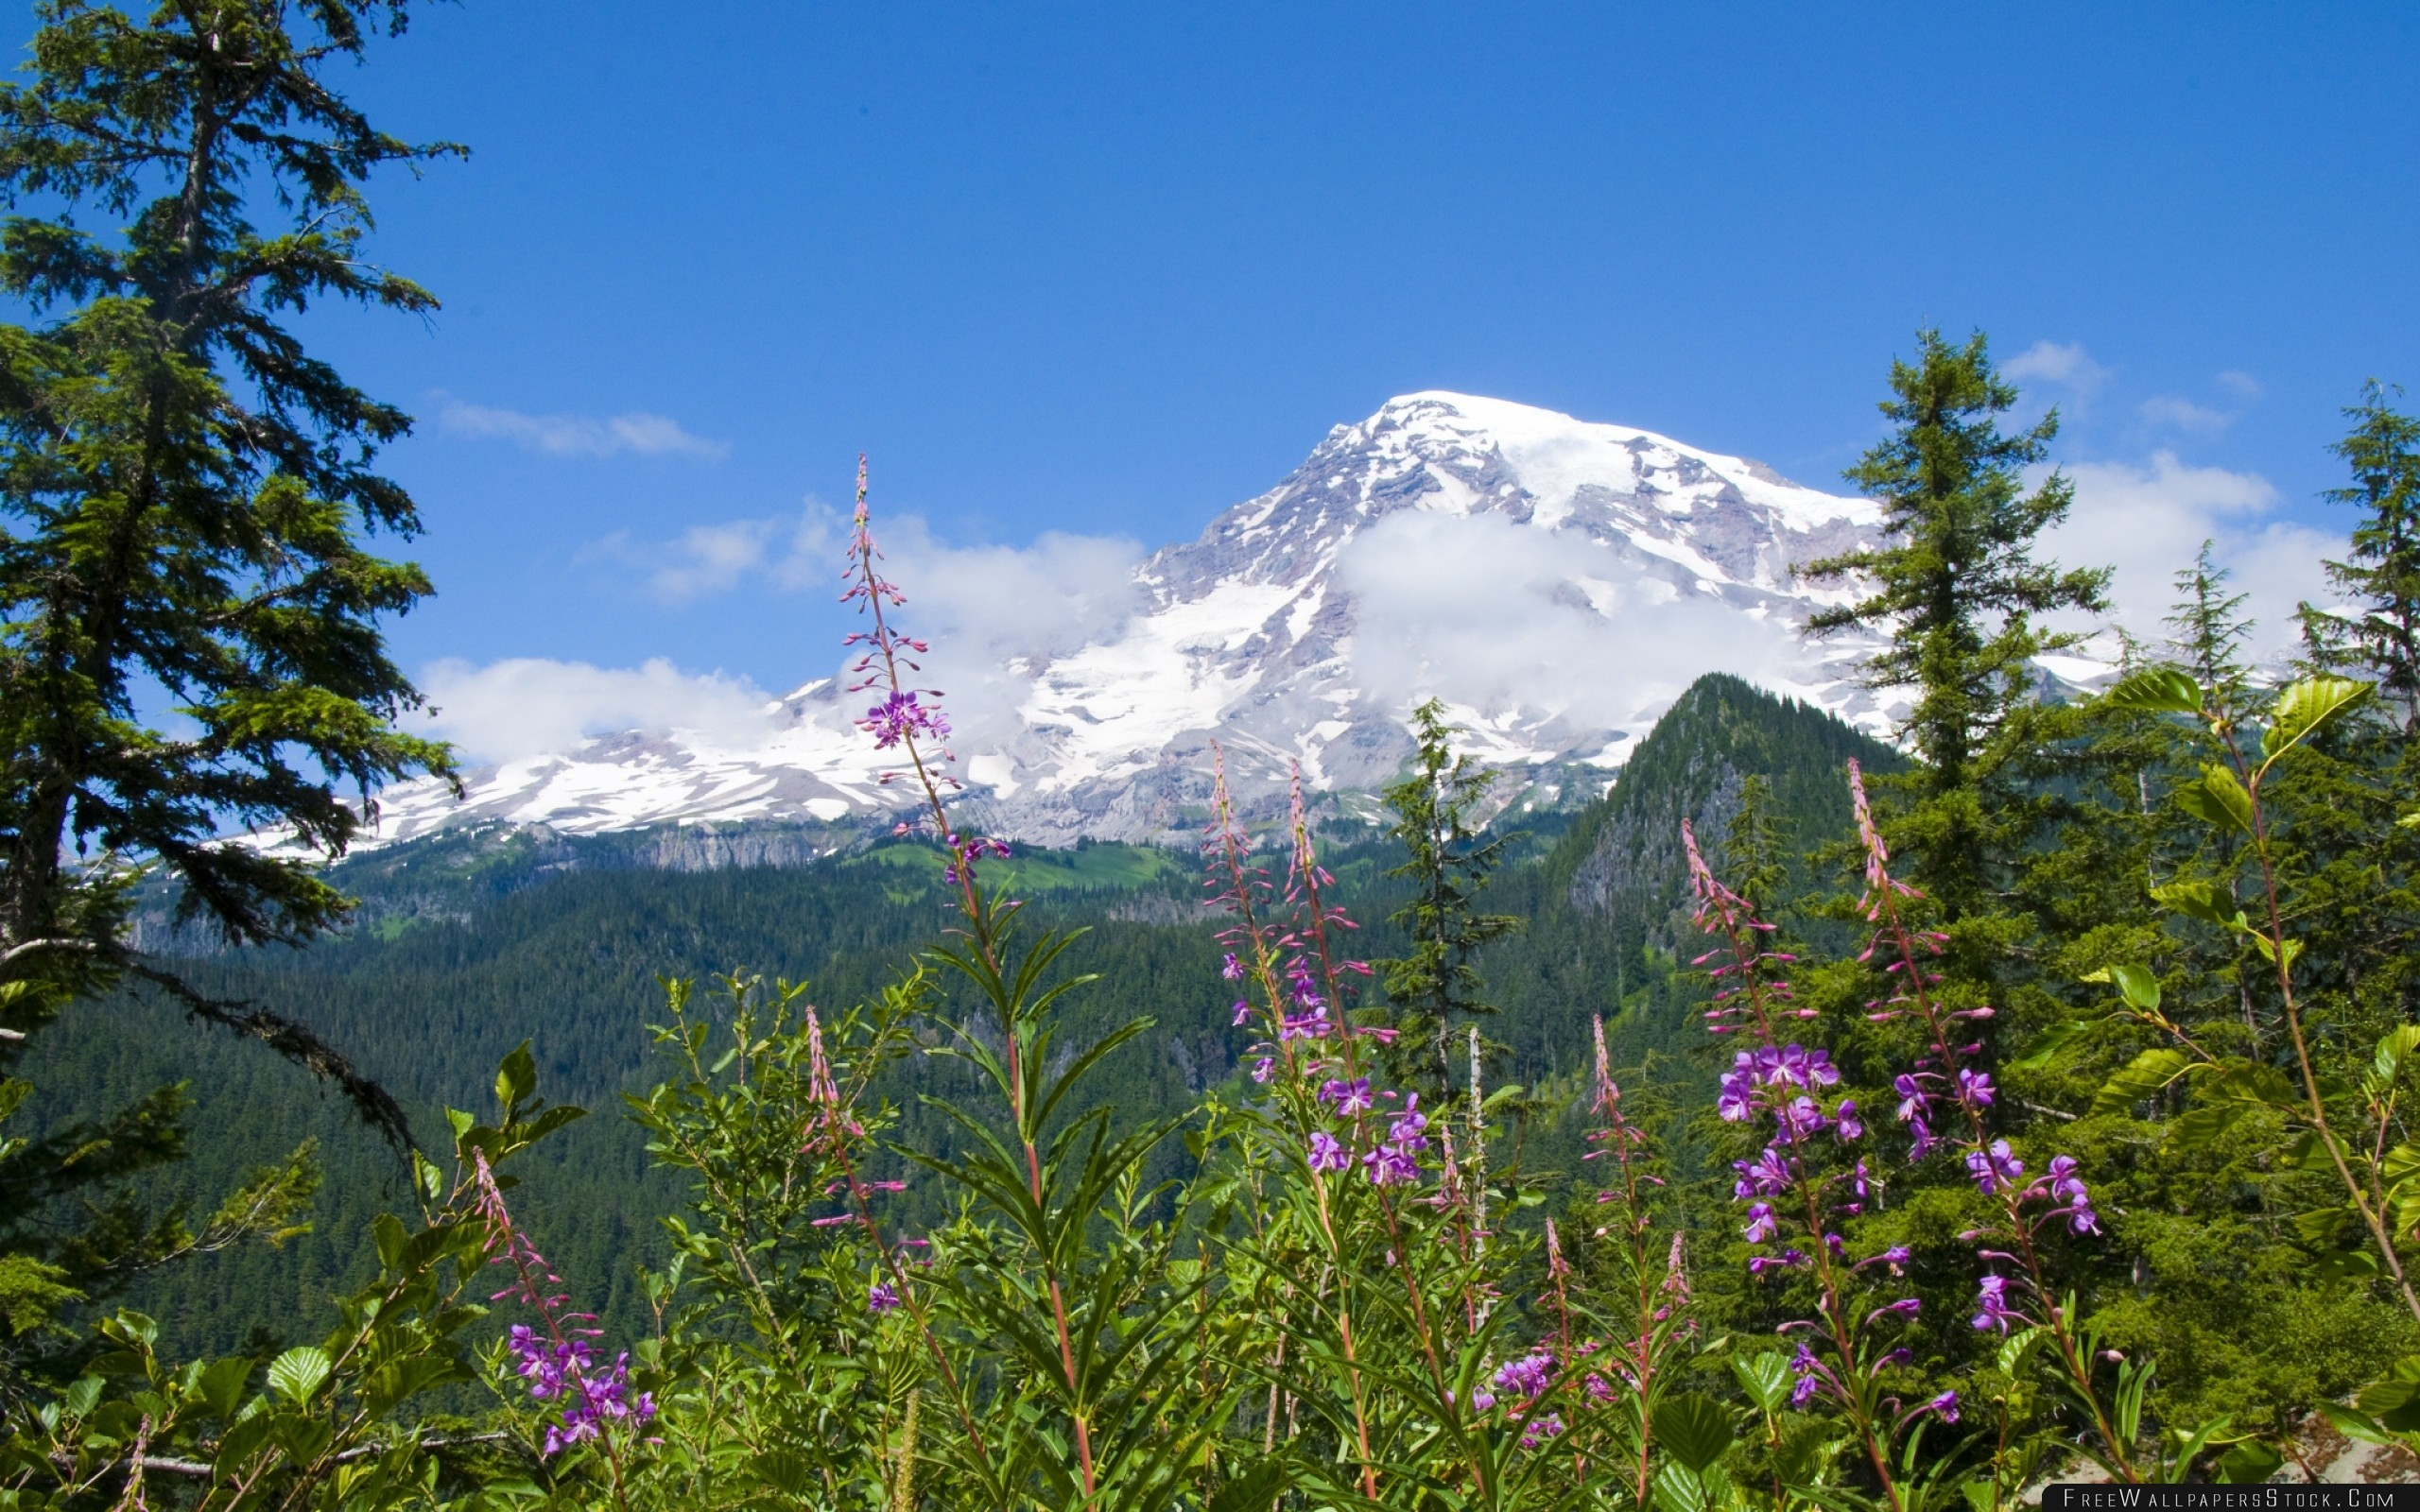 Download Free Wallpaper National Park Mount Rainier Flowers Forests Mountains